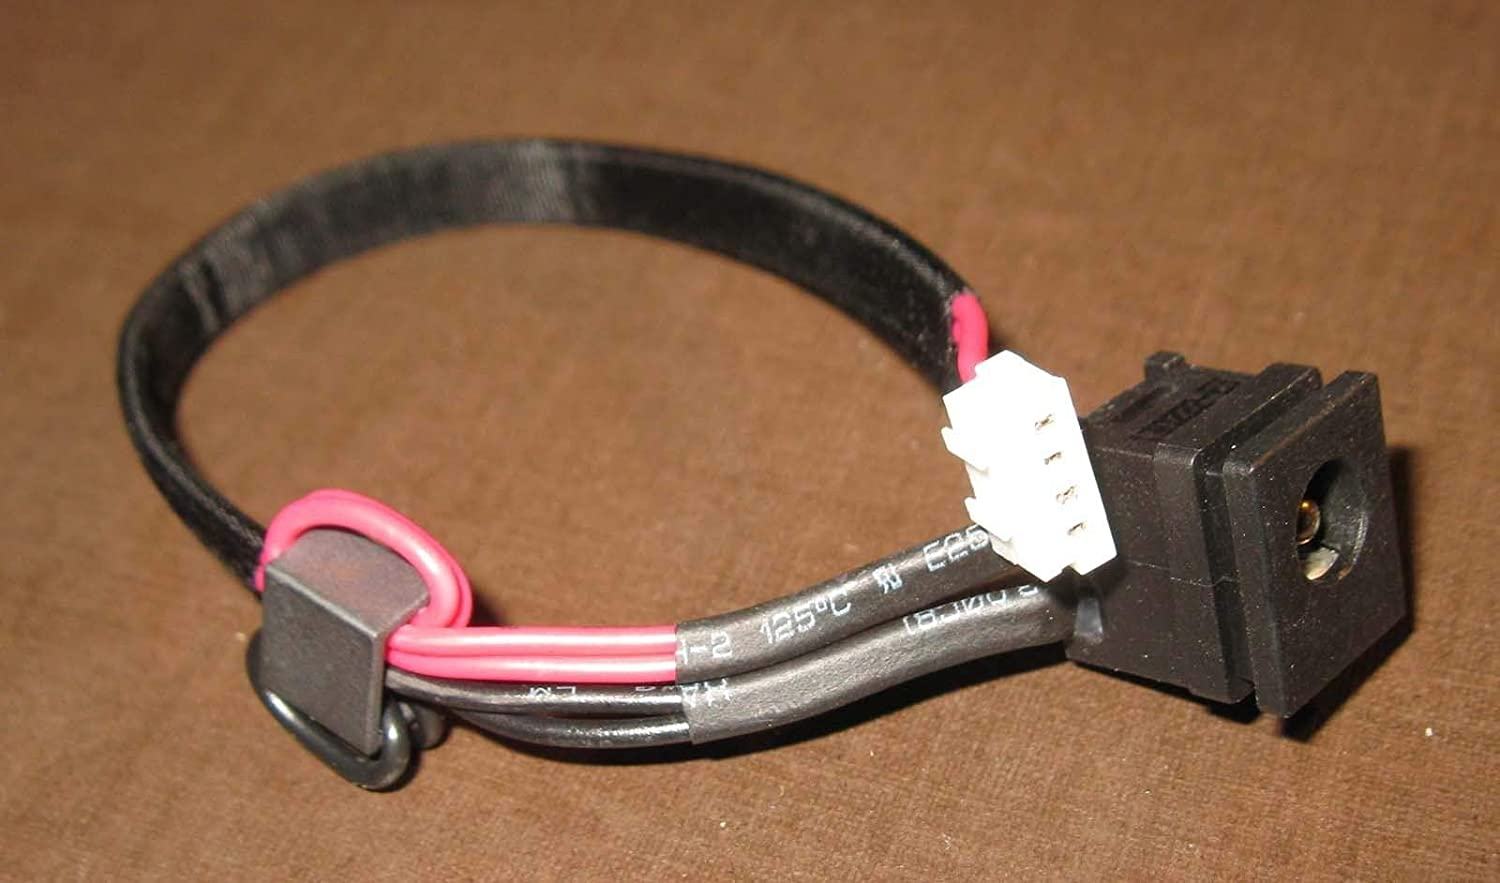 DC Power Jack cable wire for Toshiba Satellite C655-S5335 C655-S5339 C655-S5340